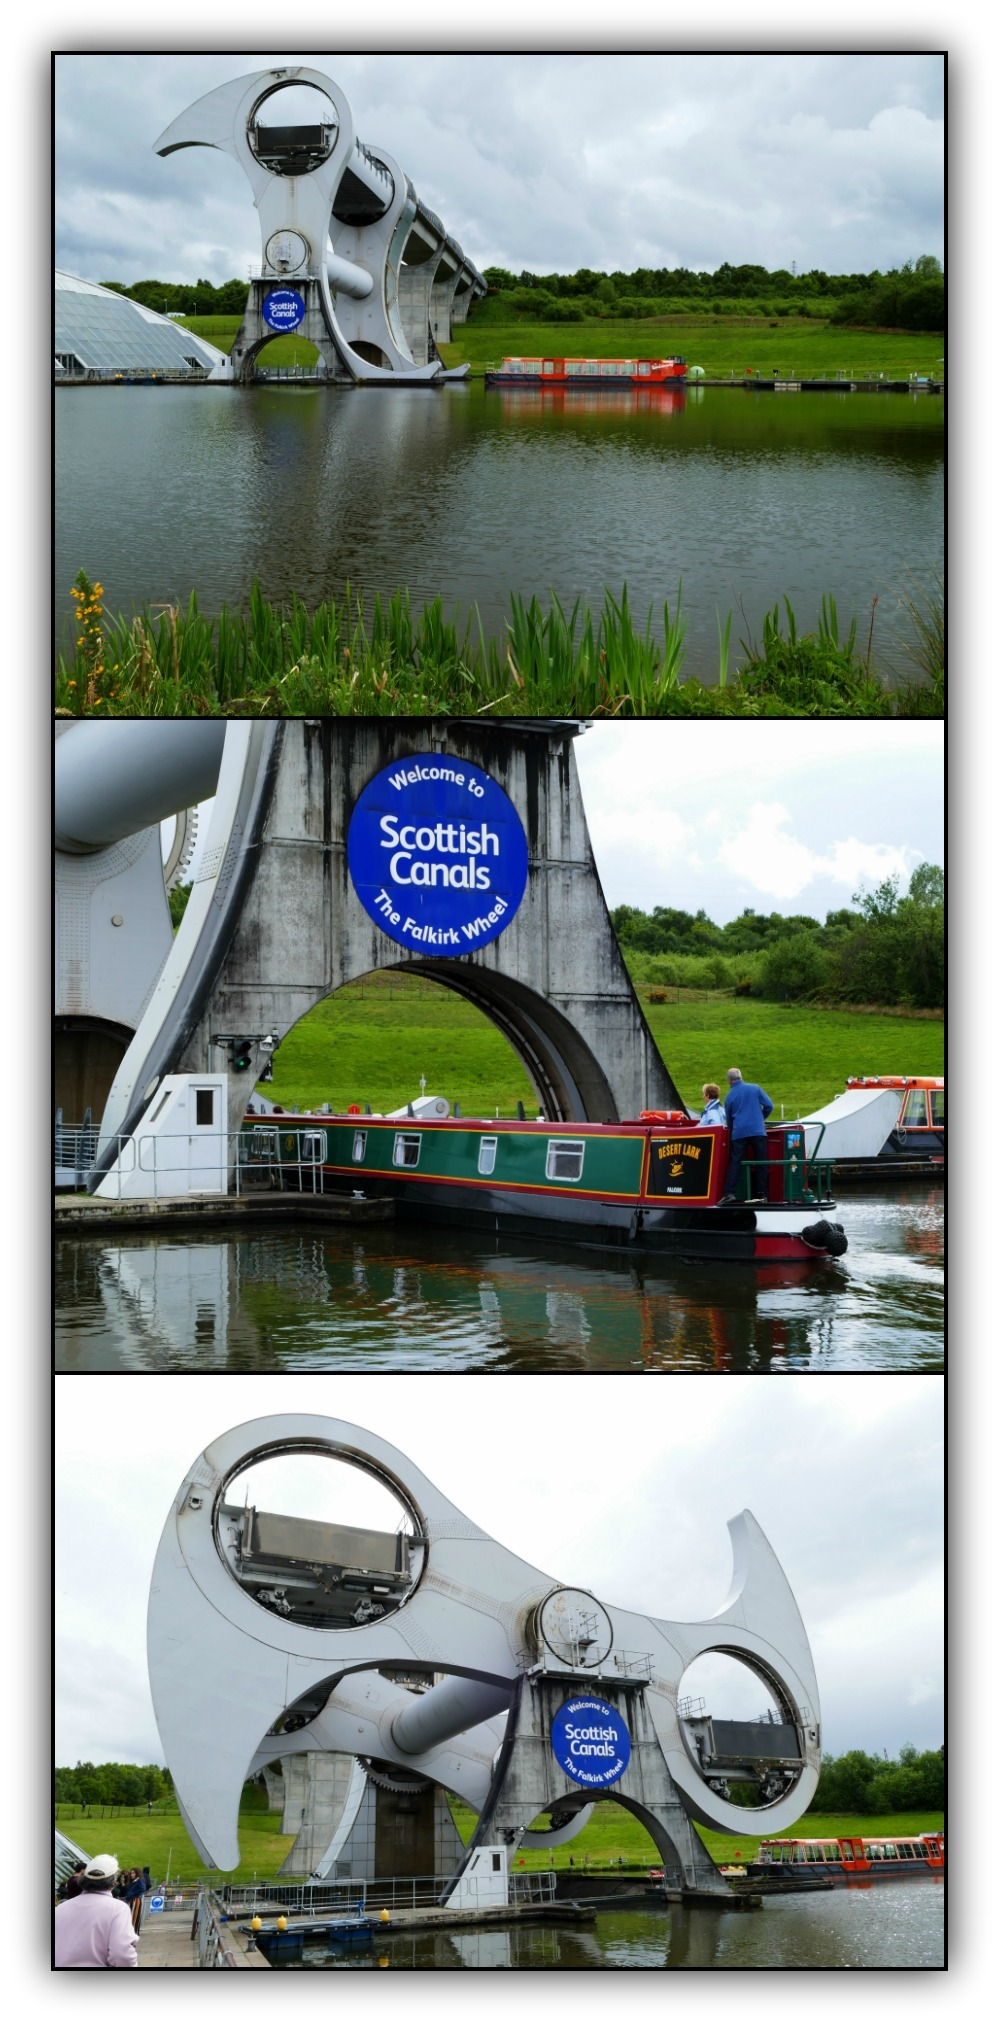 scotland, falkirk wheel, boats, canals, engineerin